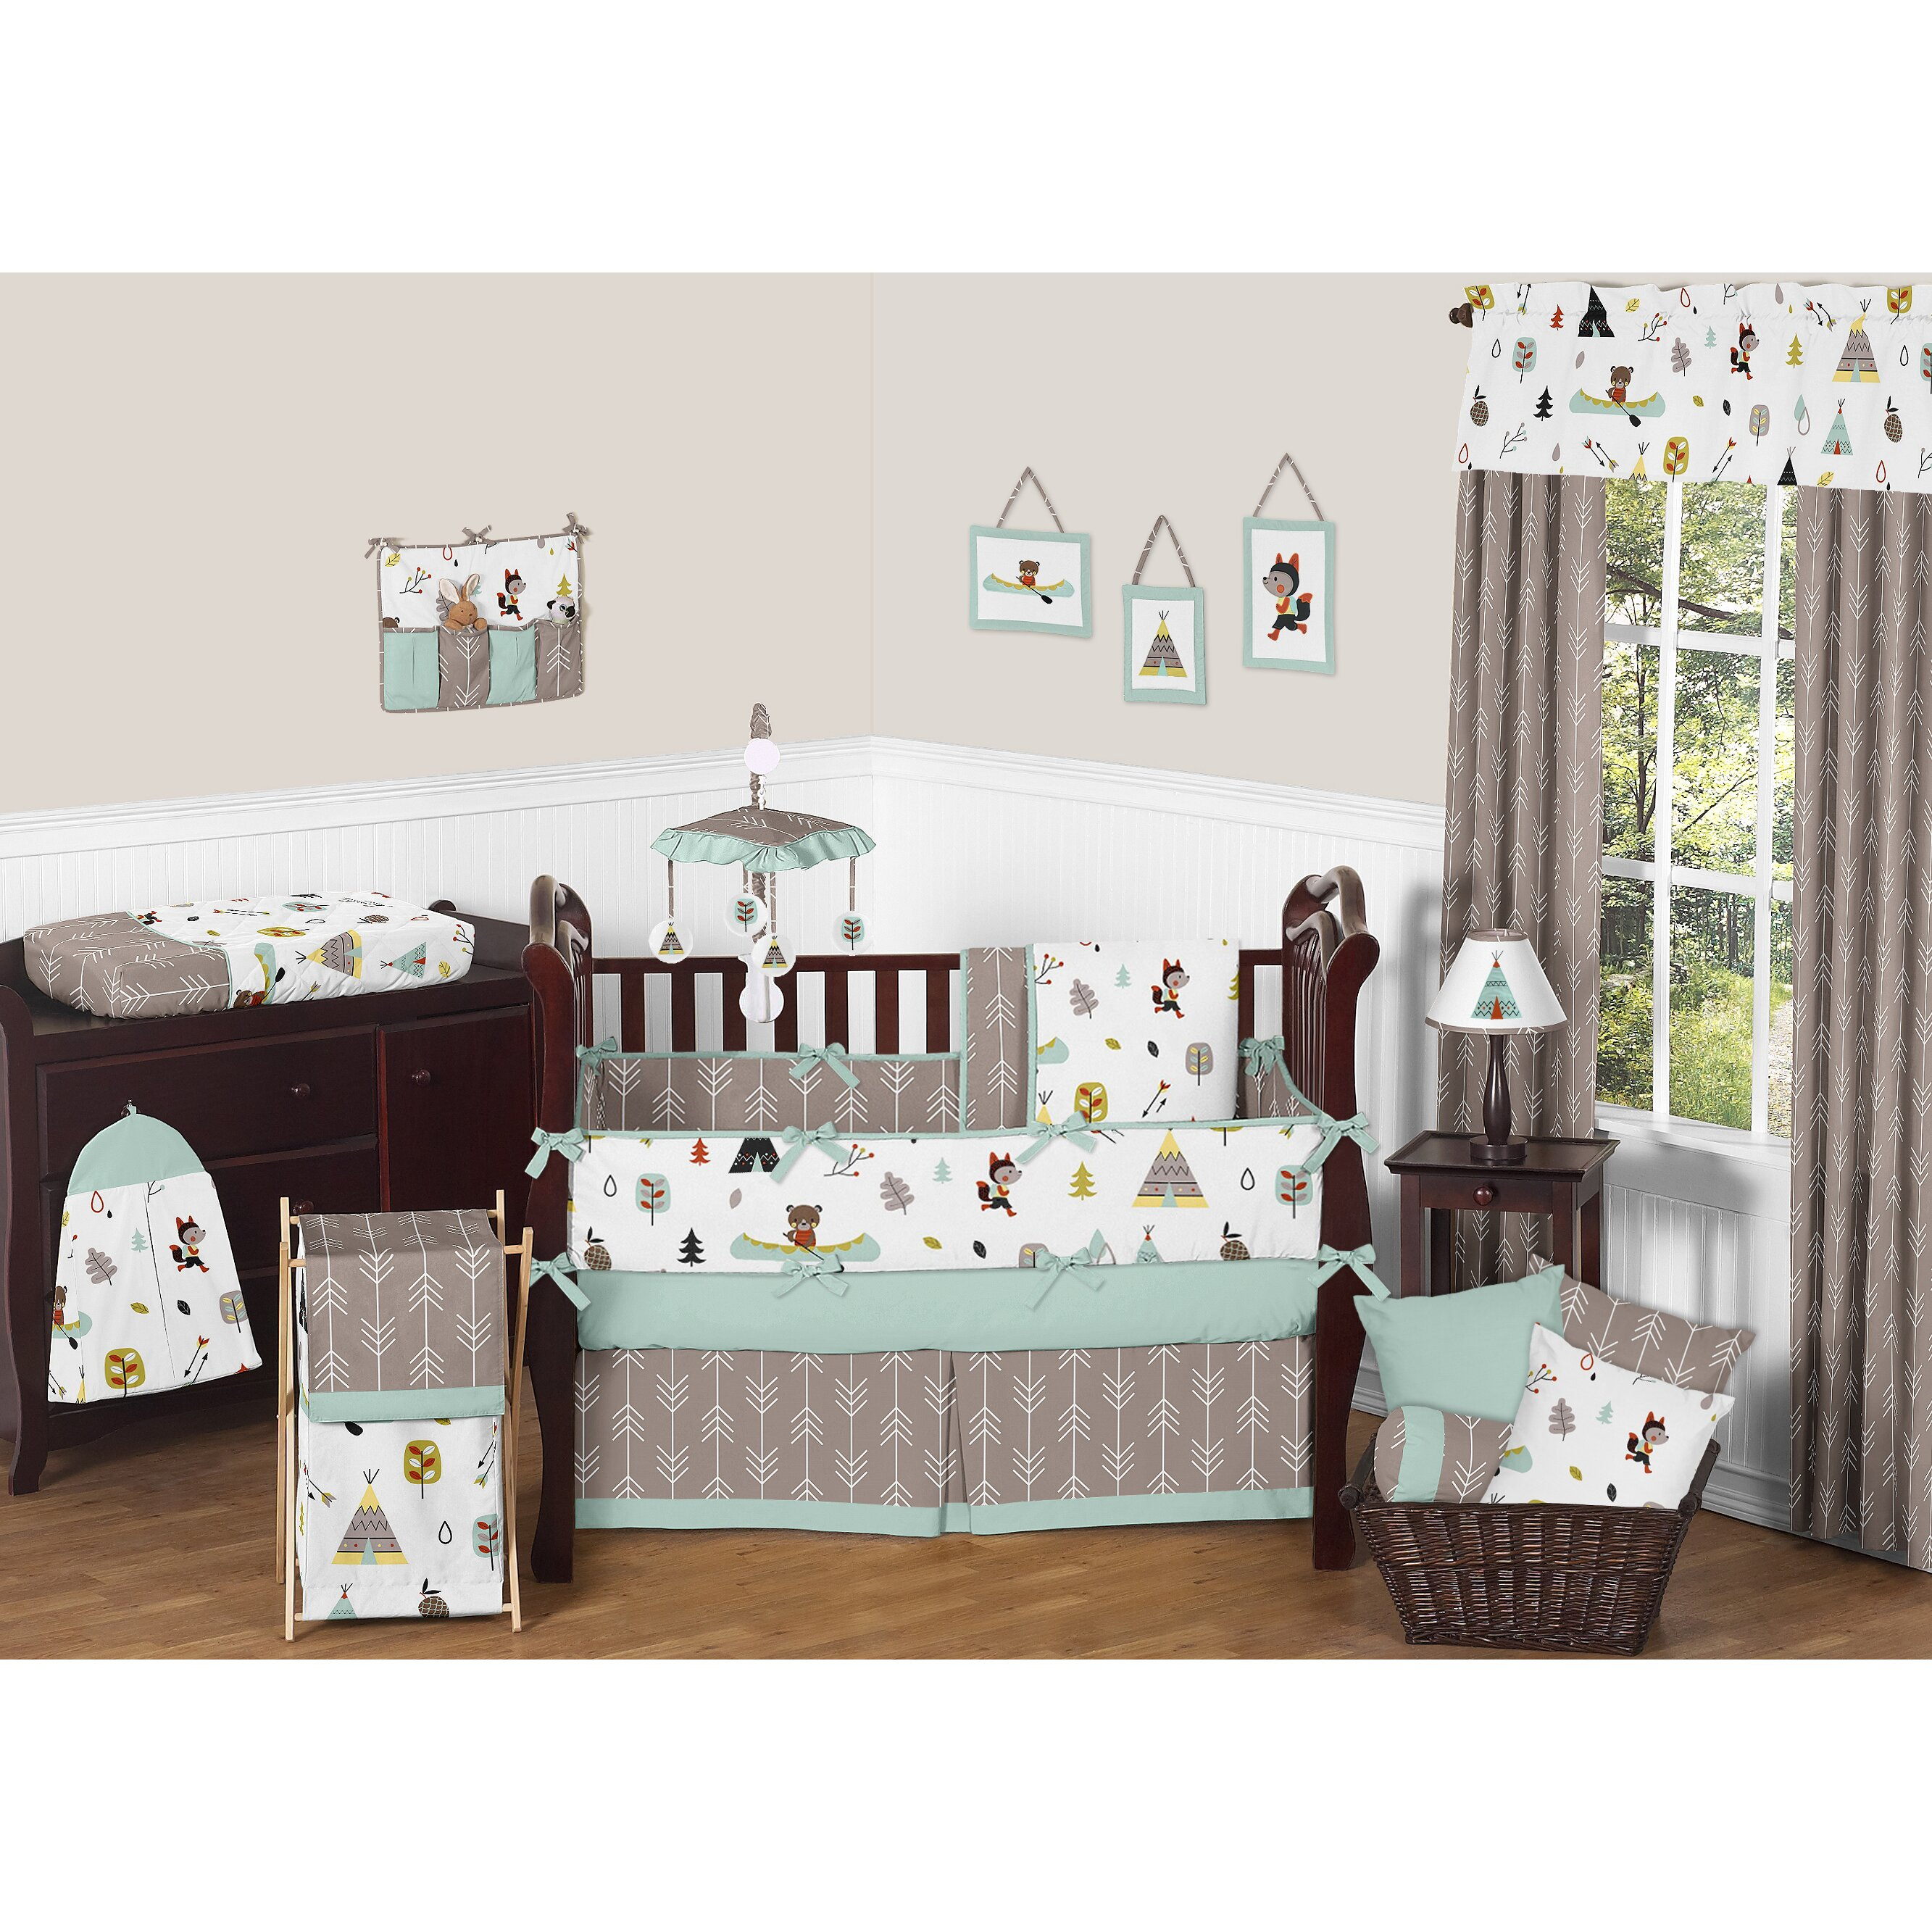 Sweet Jojo Outdoor Adventure Crib Bedding Com